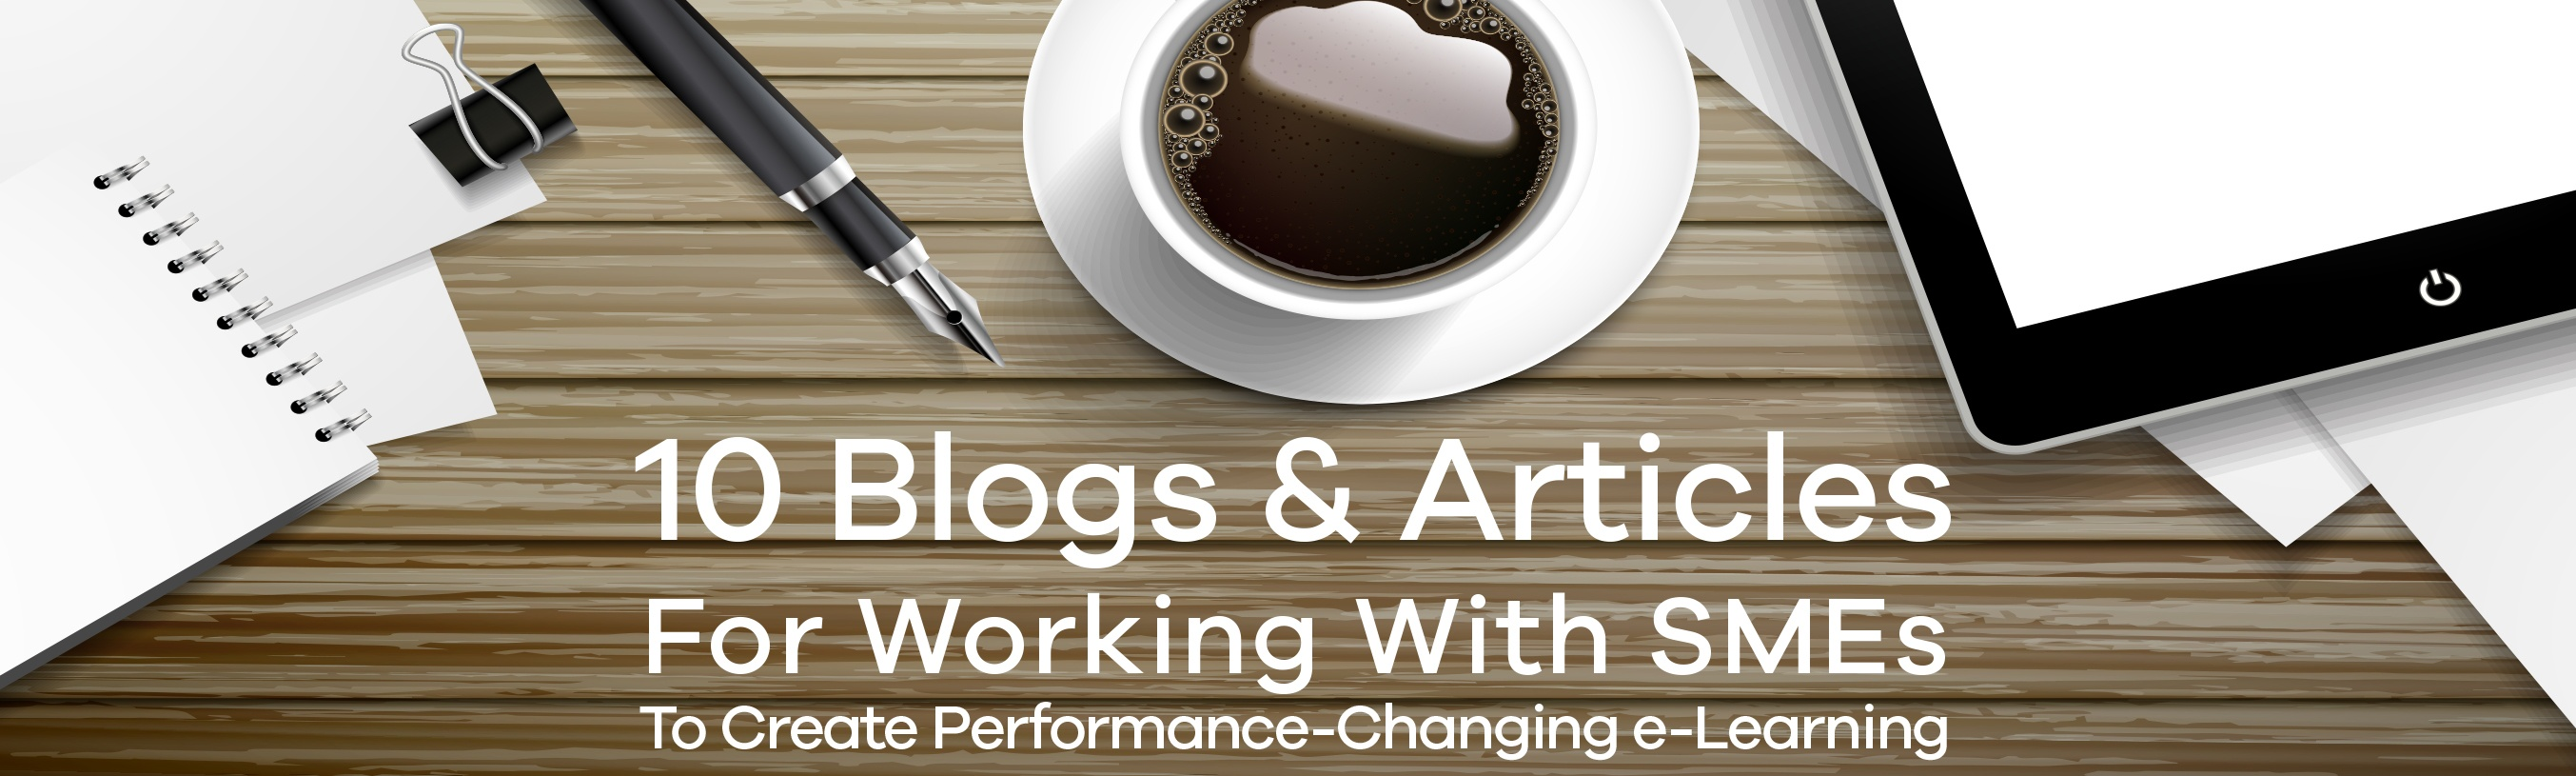 10_Blogs_for_Working_With_SMEs_CTA_For_Blog__Social_WIDE_UPDATED